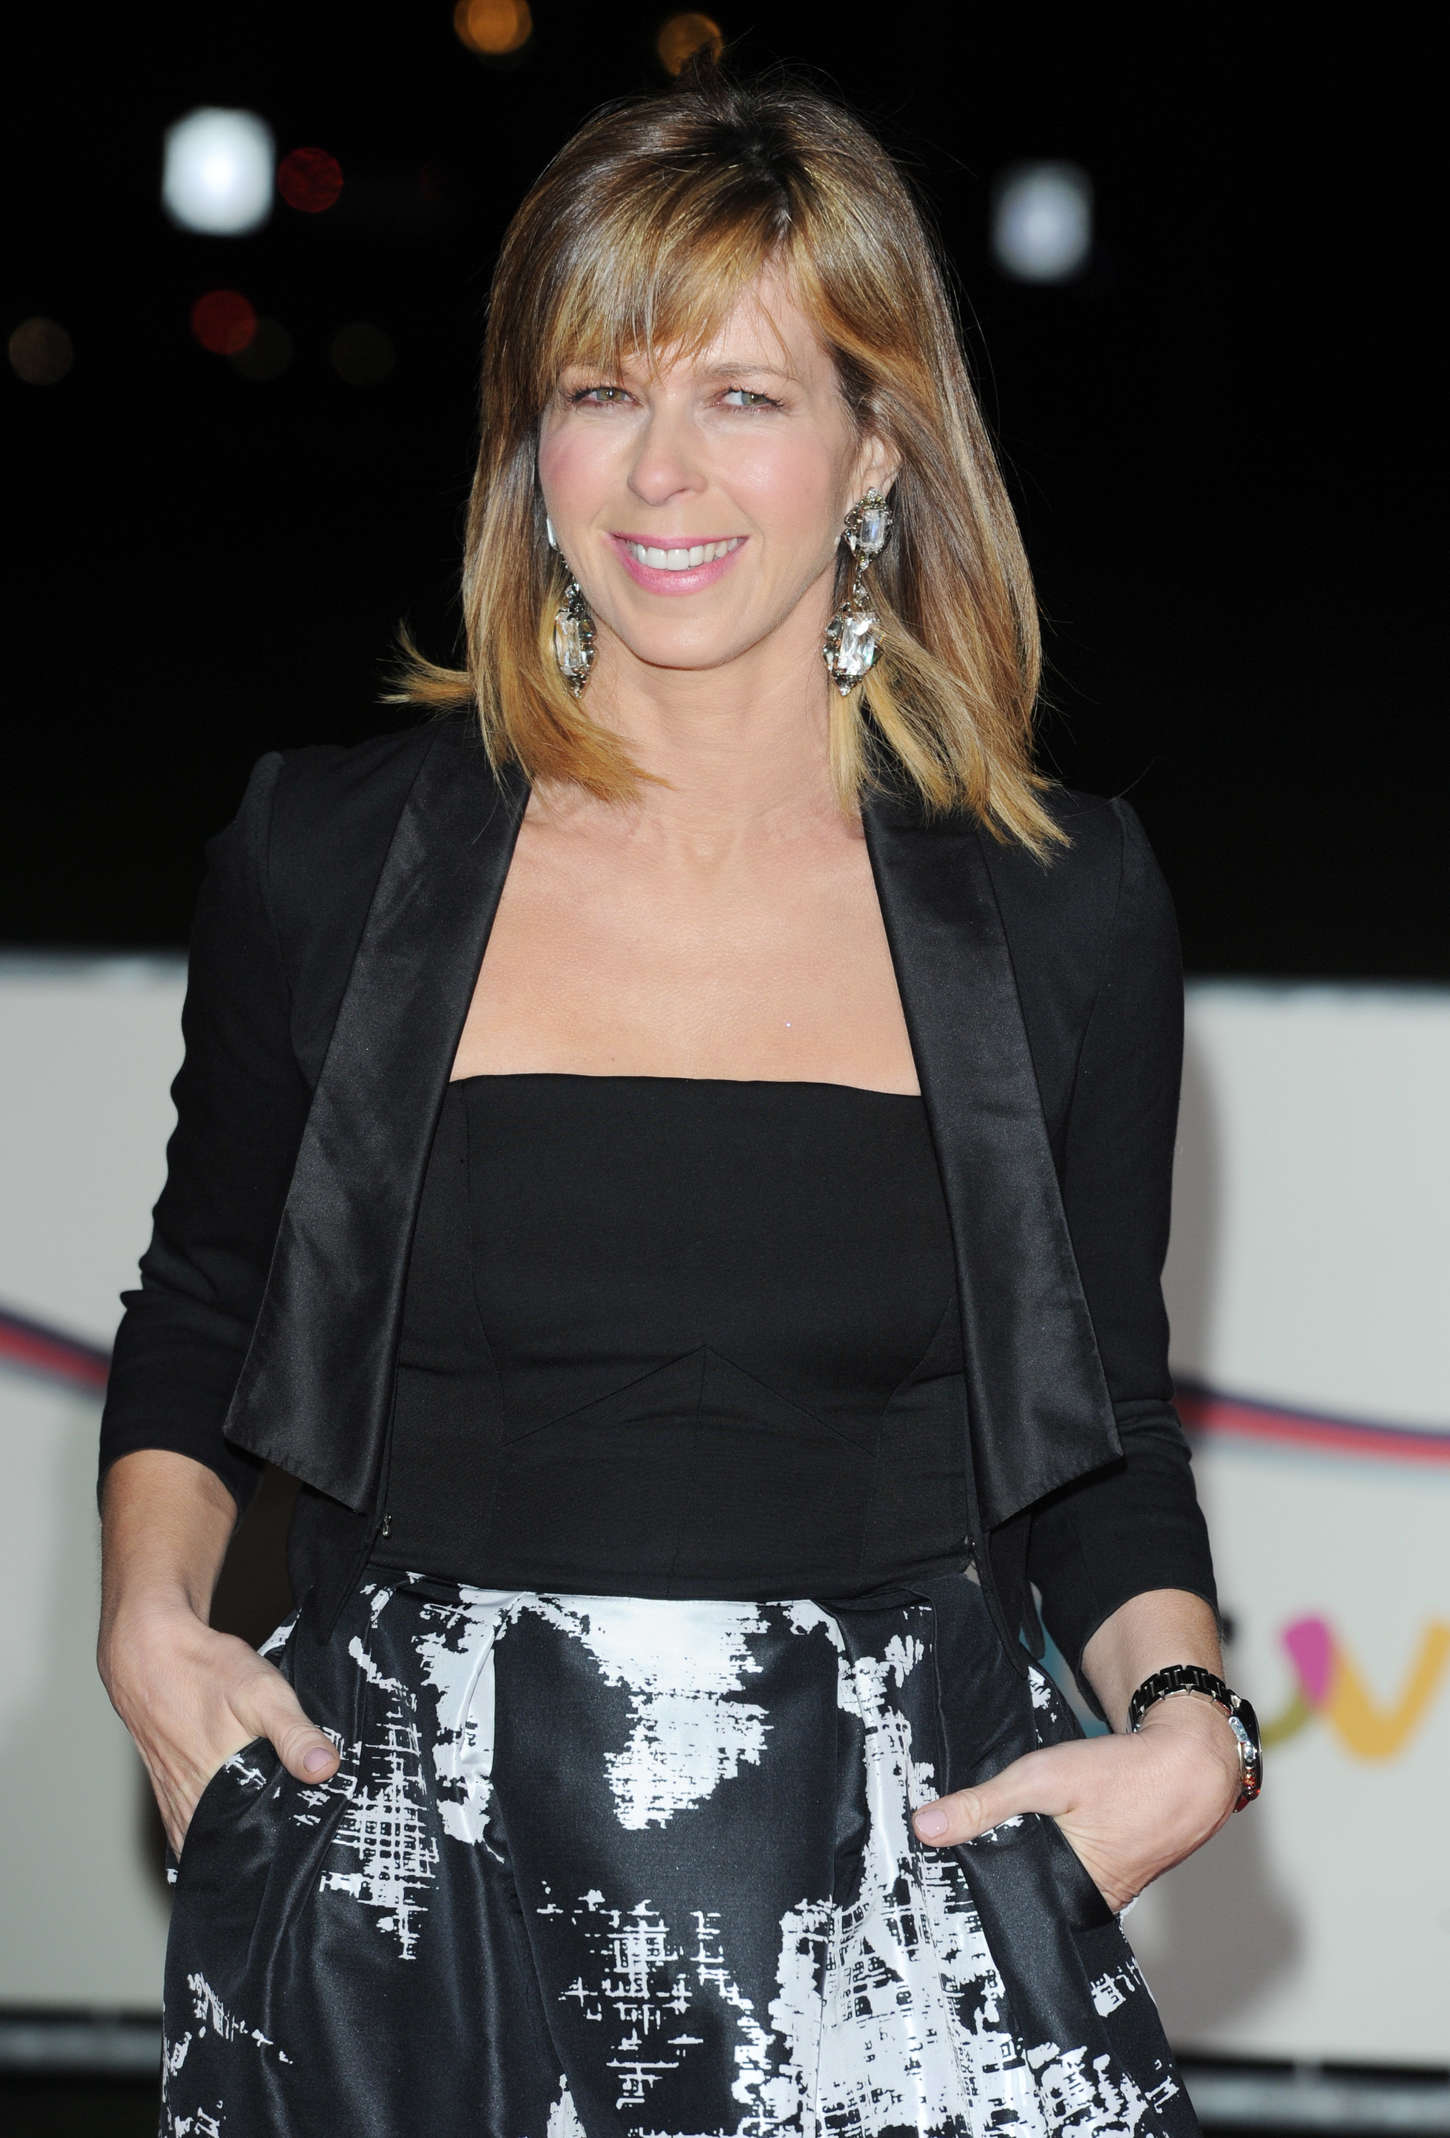 Kate Garraway A Night Of Heroes The Sun Military Awards in London